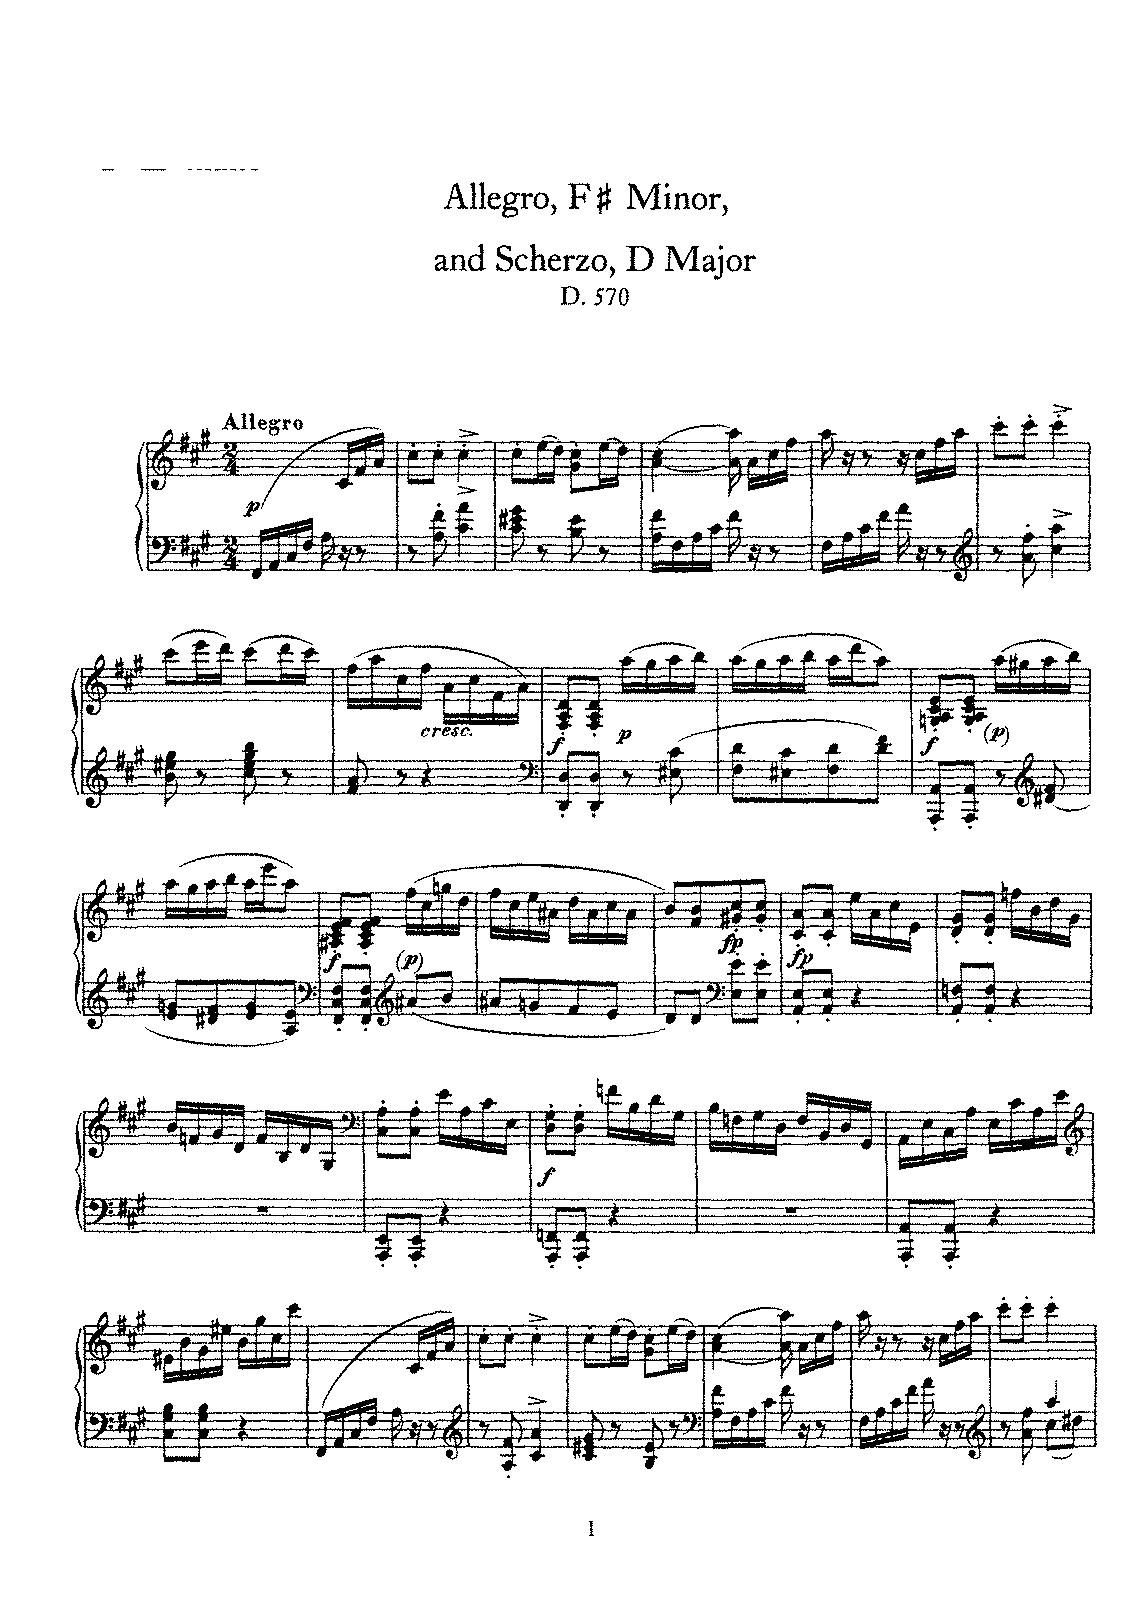 Schubert - D.570 - Allegro and Scherzo.pdf